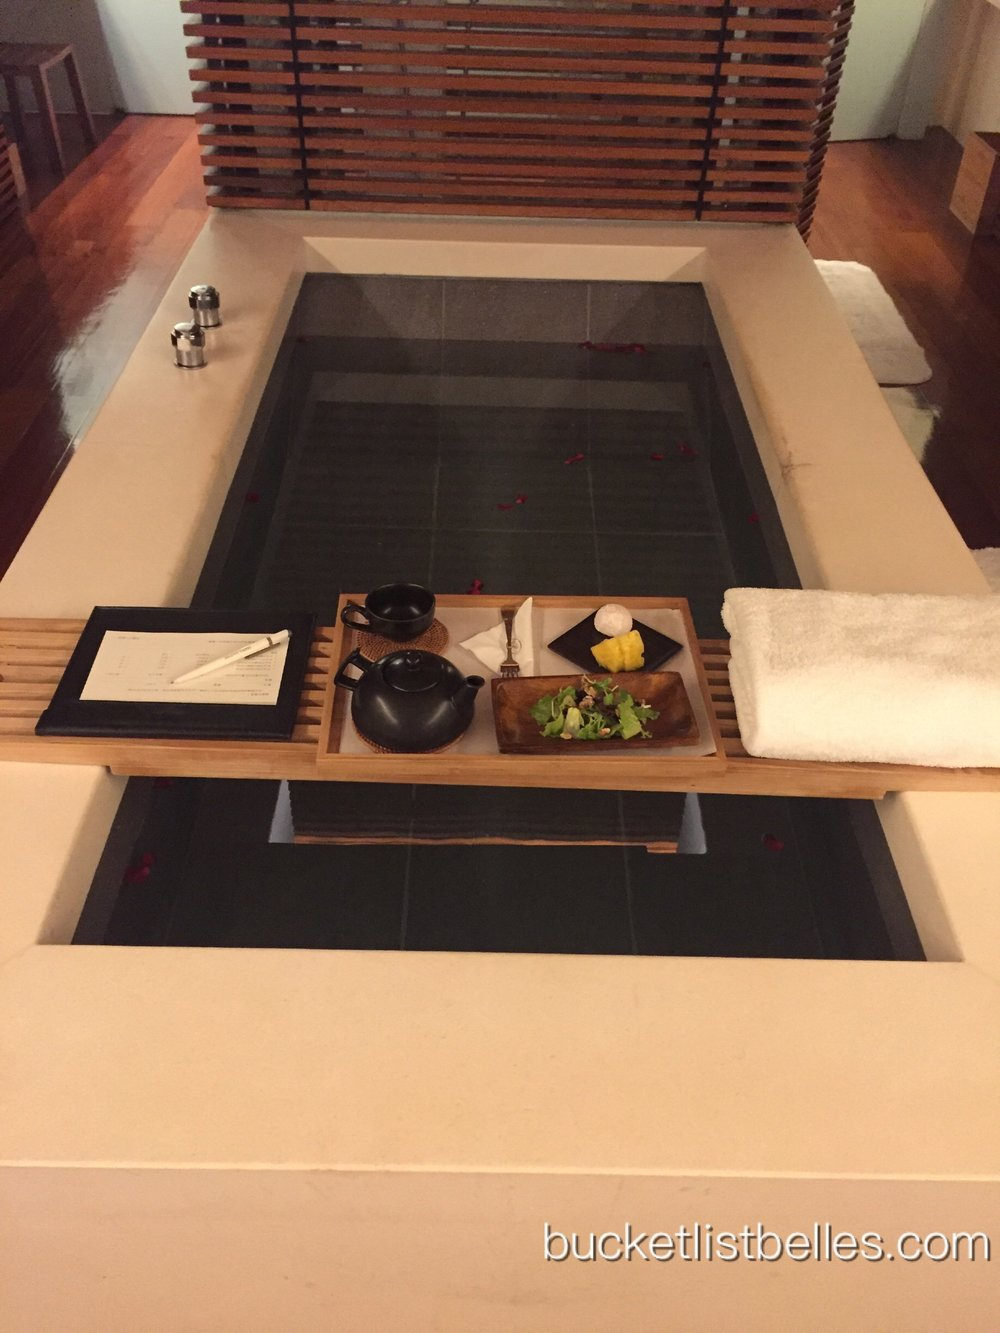 Huge stone bath all to myself & light refreshments of salad, mochi and fruit.